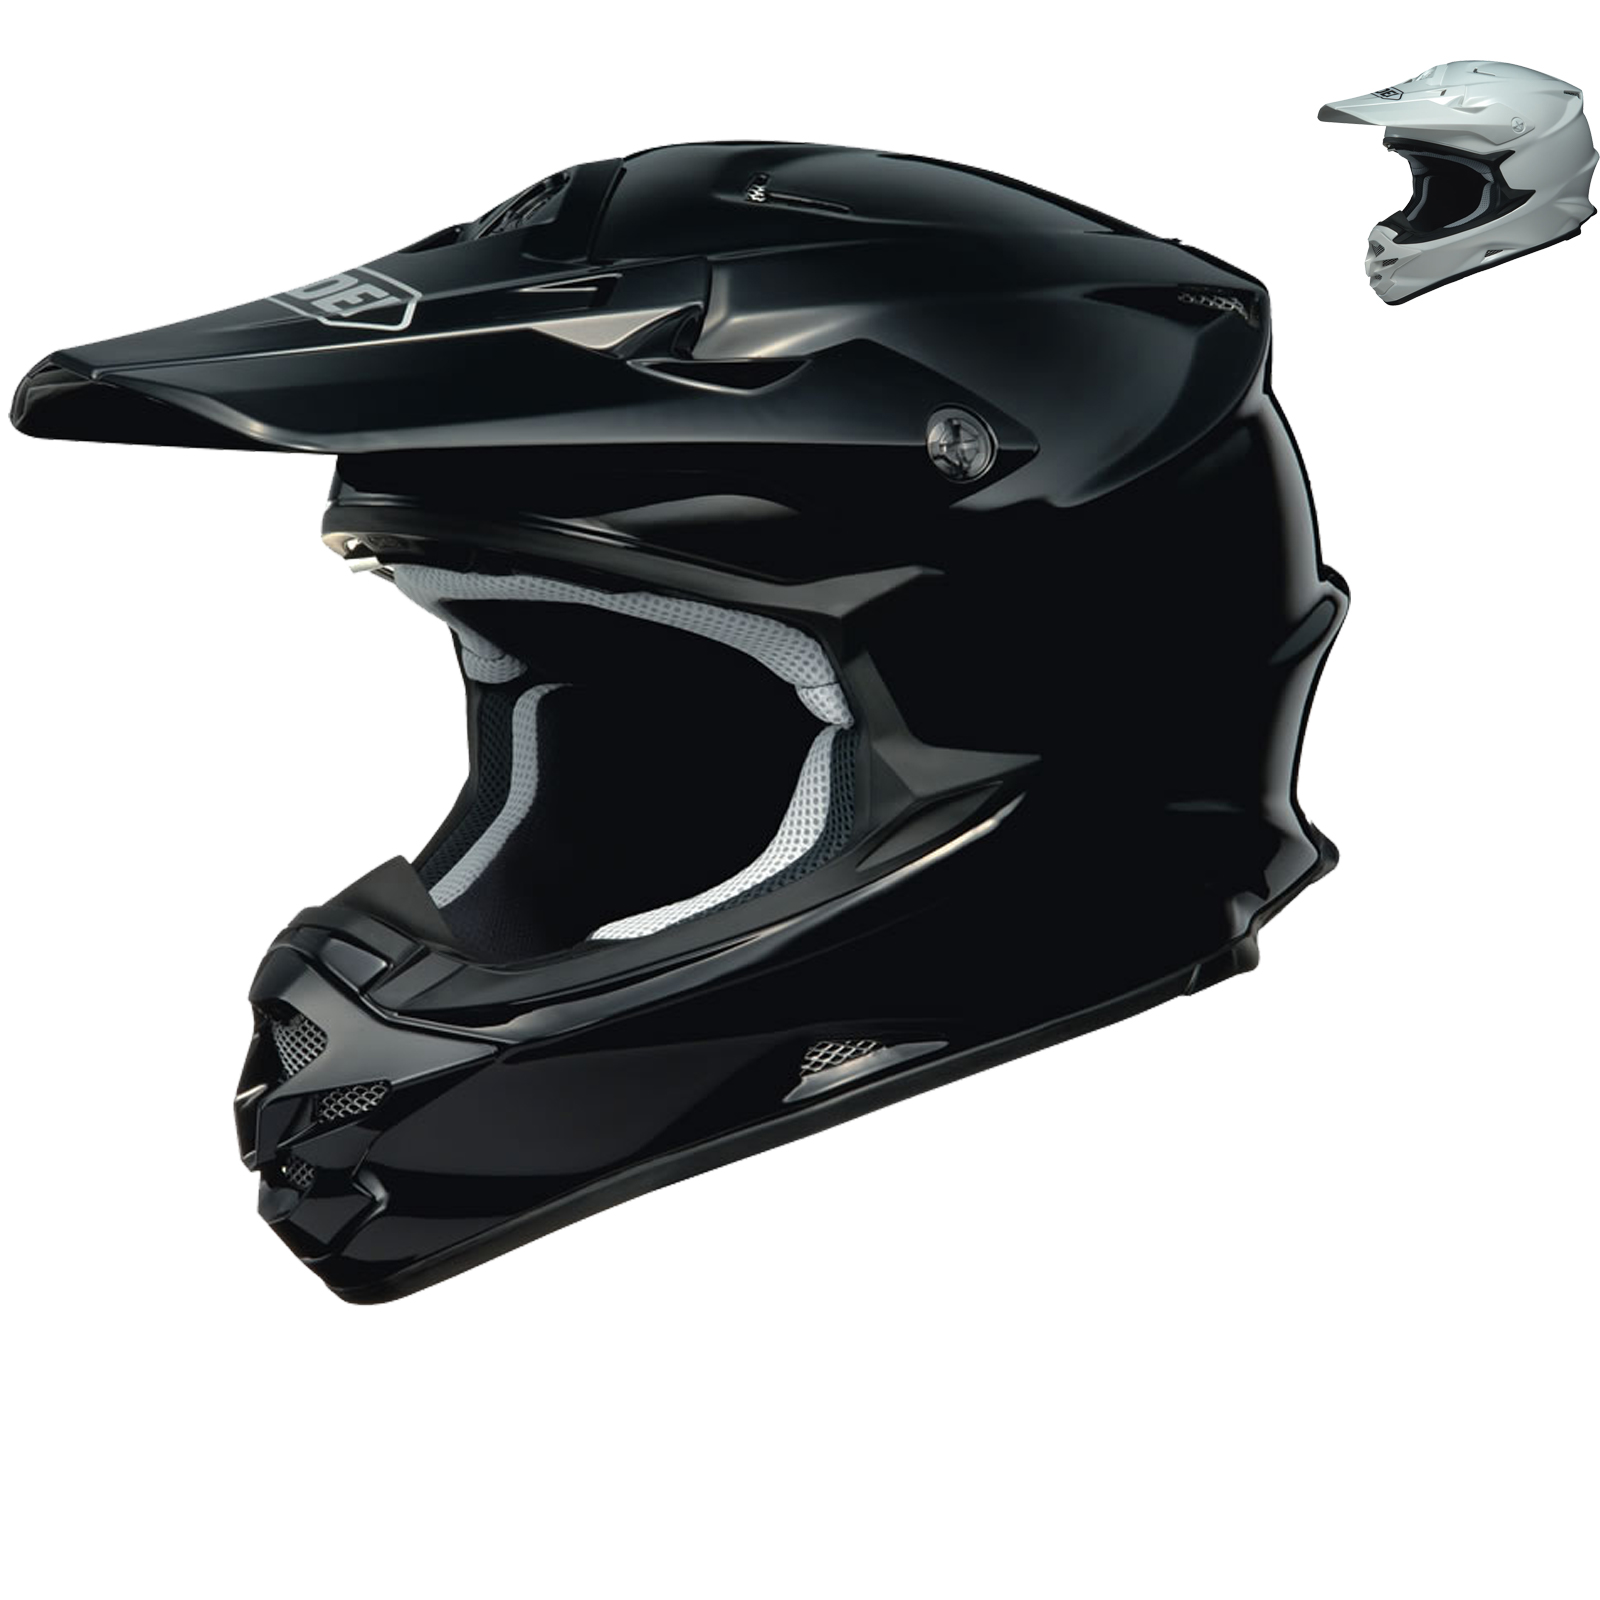 shoei vfx w motocross helmet motocross helmets. Black Bedroom Furniture Sets. Home Design Ideas